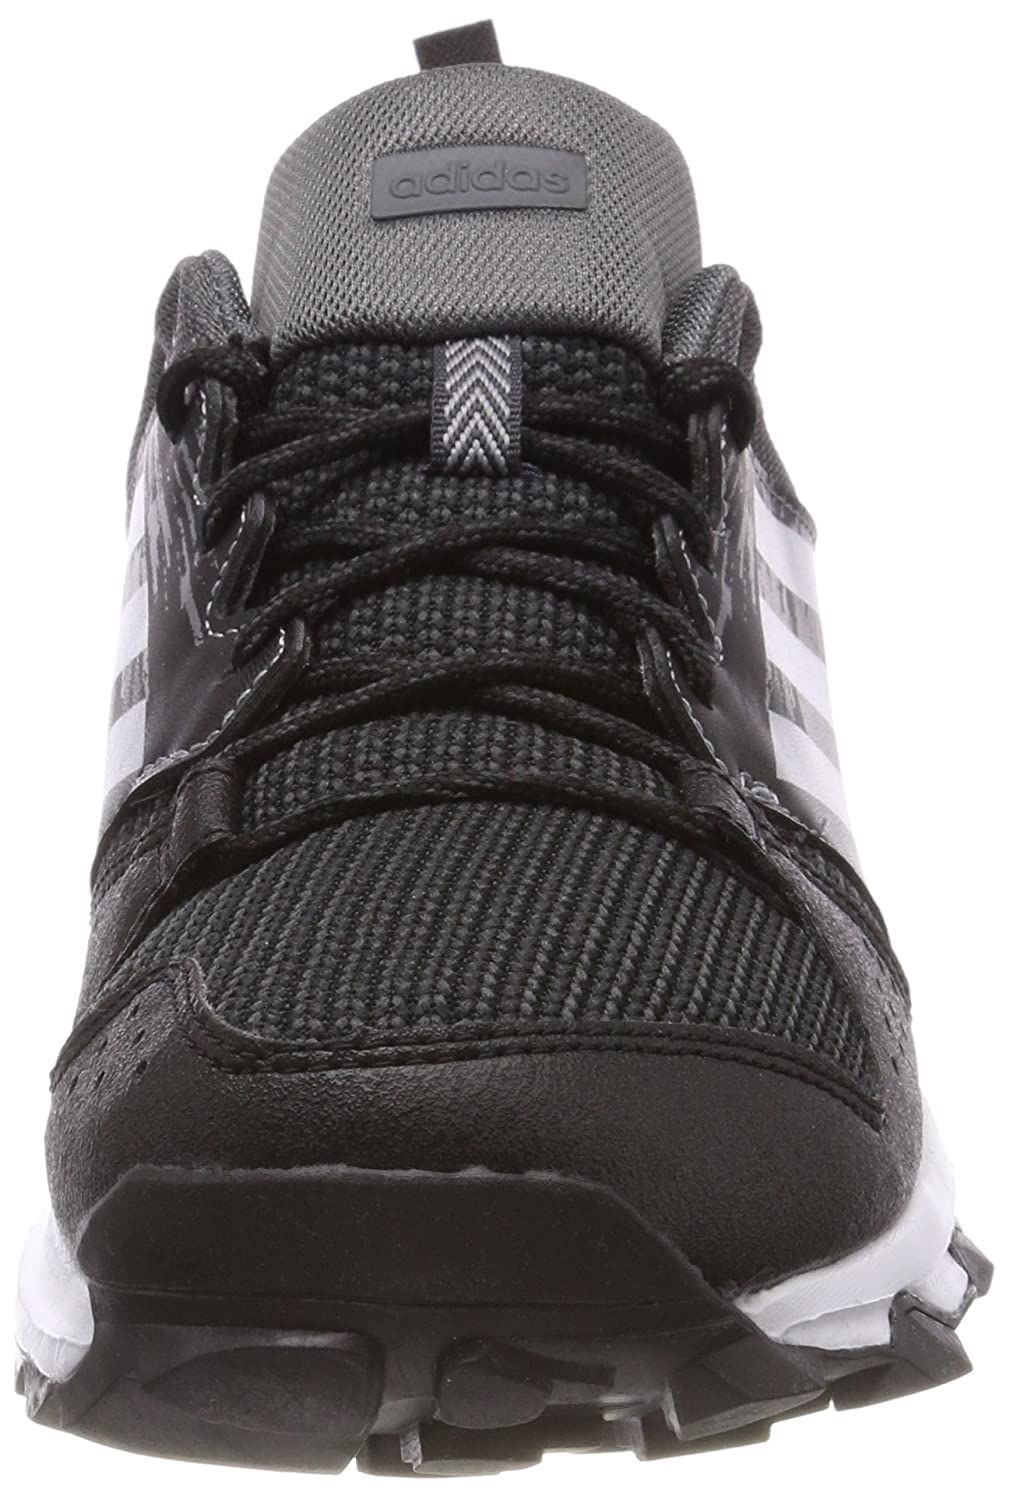 get cheap 66a79 f40fc adidas Galaxy Trail, Zapatillas de Trail Running para Hombre Amazon.es  Zapatos y complementos